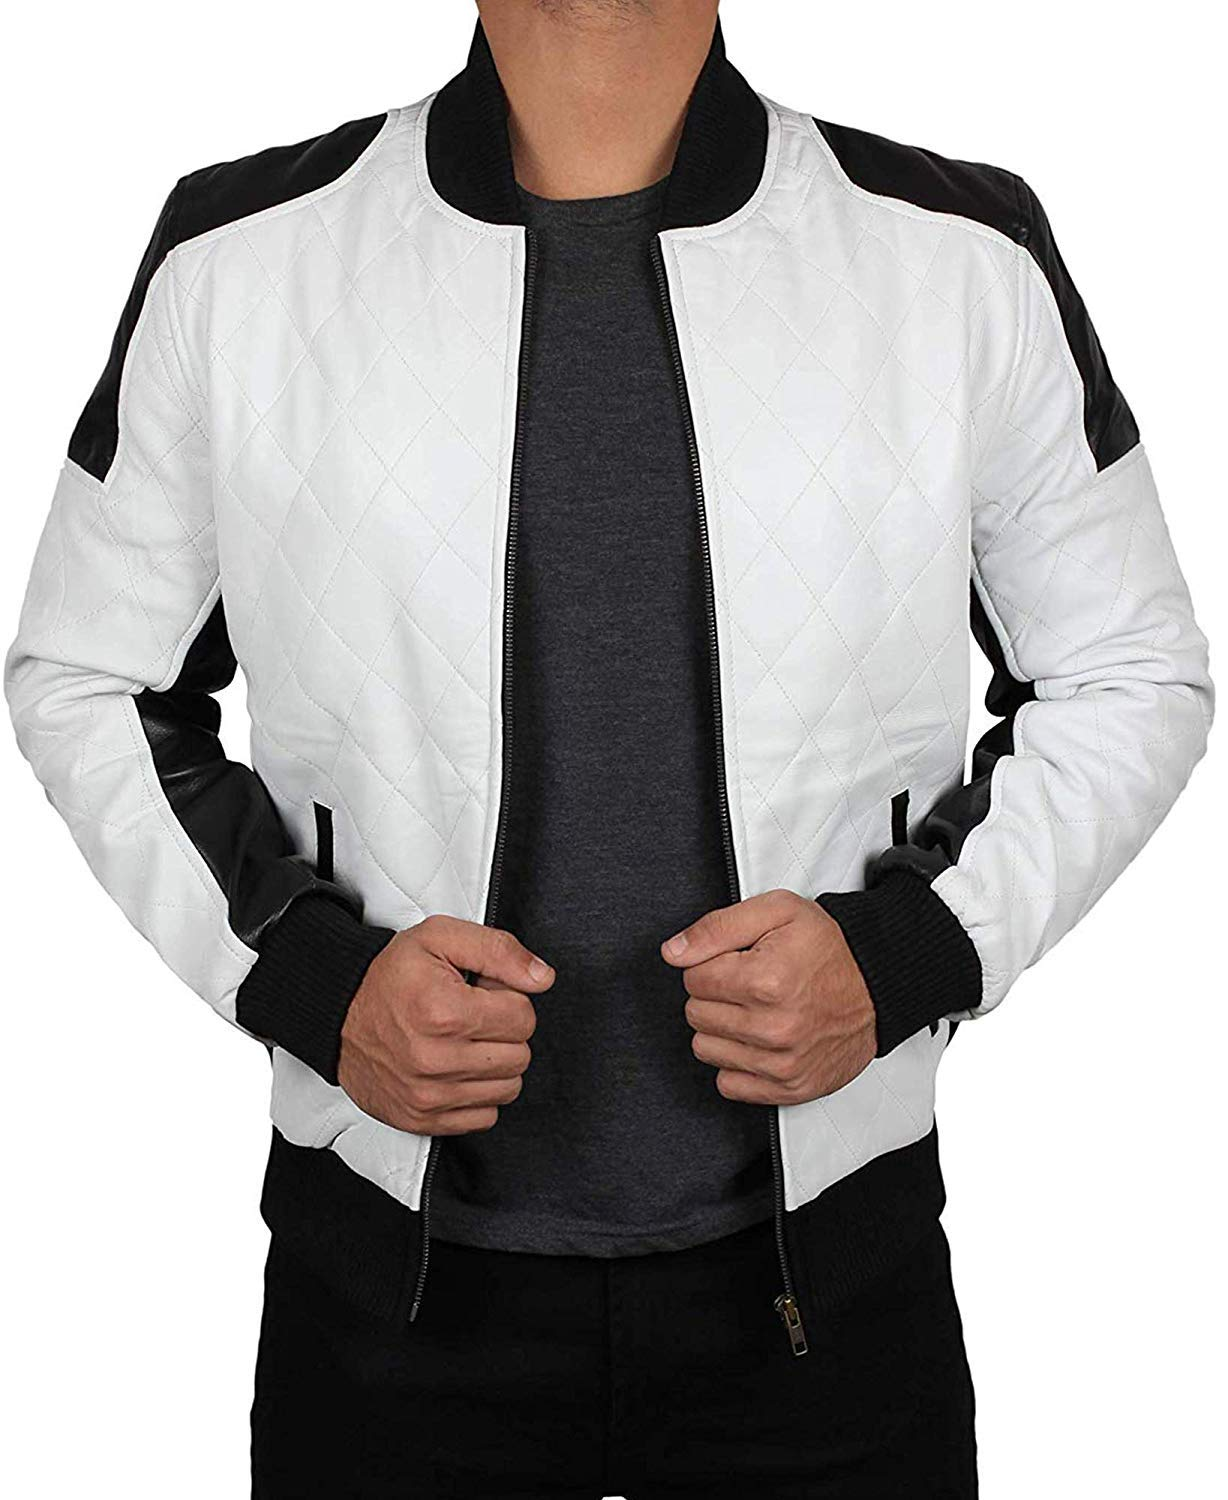 Decrum Leather Bomber Jackets for Men - Black and Brown Lambskin Bomber Jackets